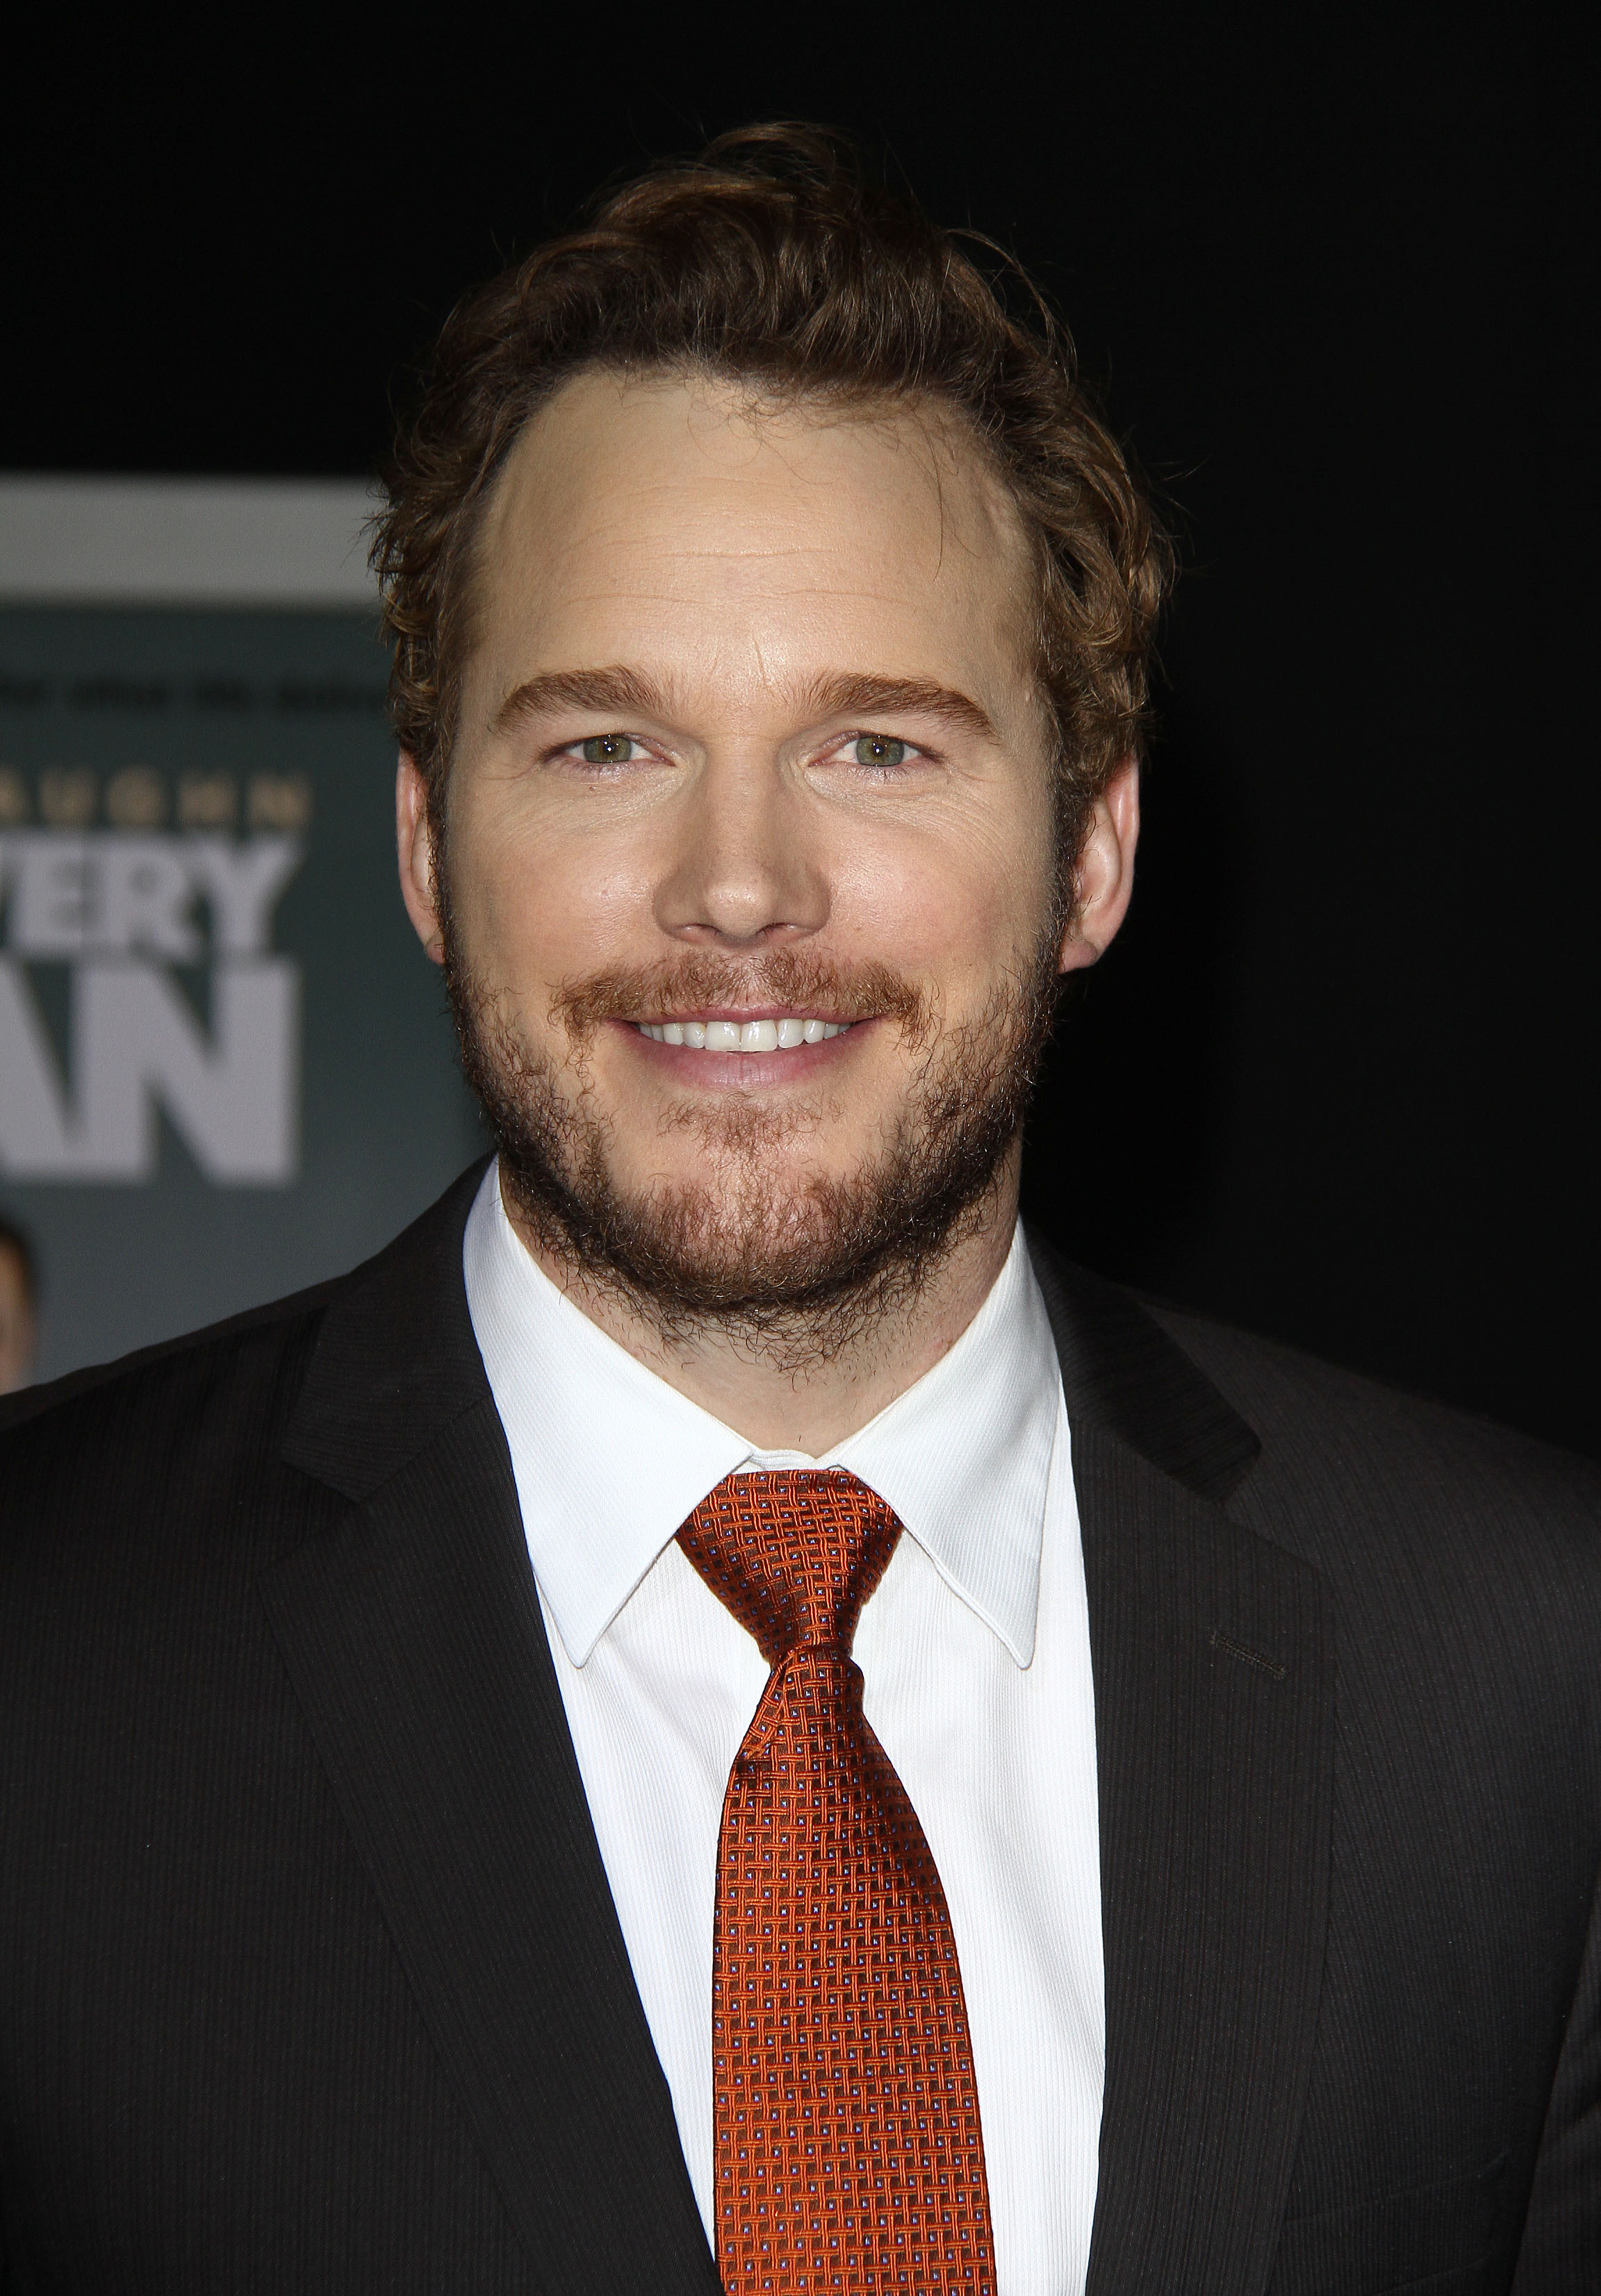 Chris Pratt Backgrounds, Compatible - PC, Mobile, Gadgets| 2304x3304 px